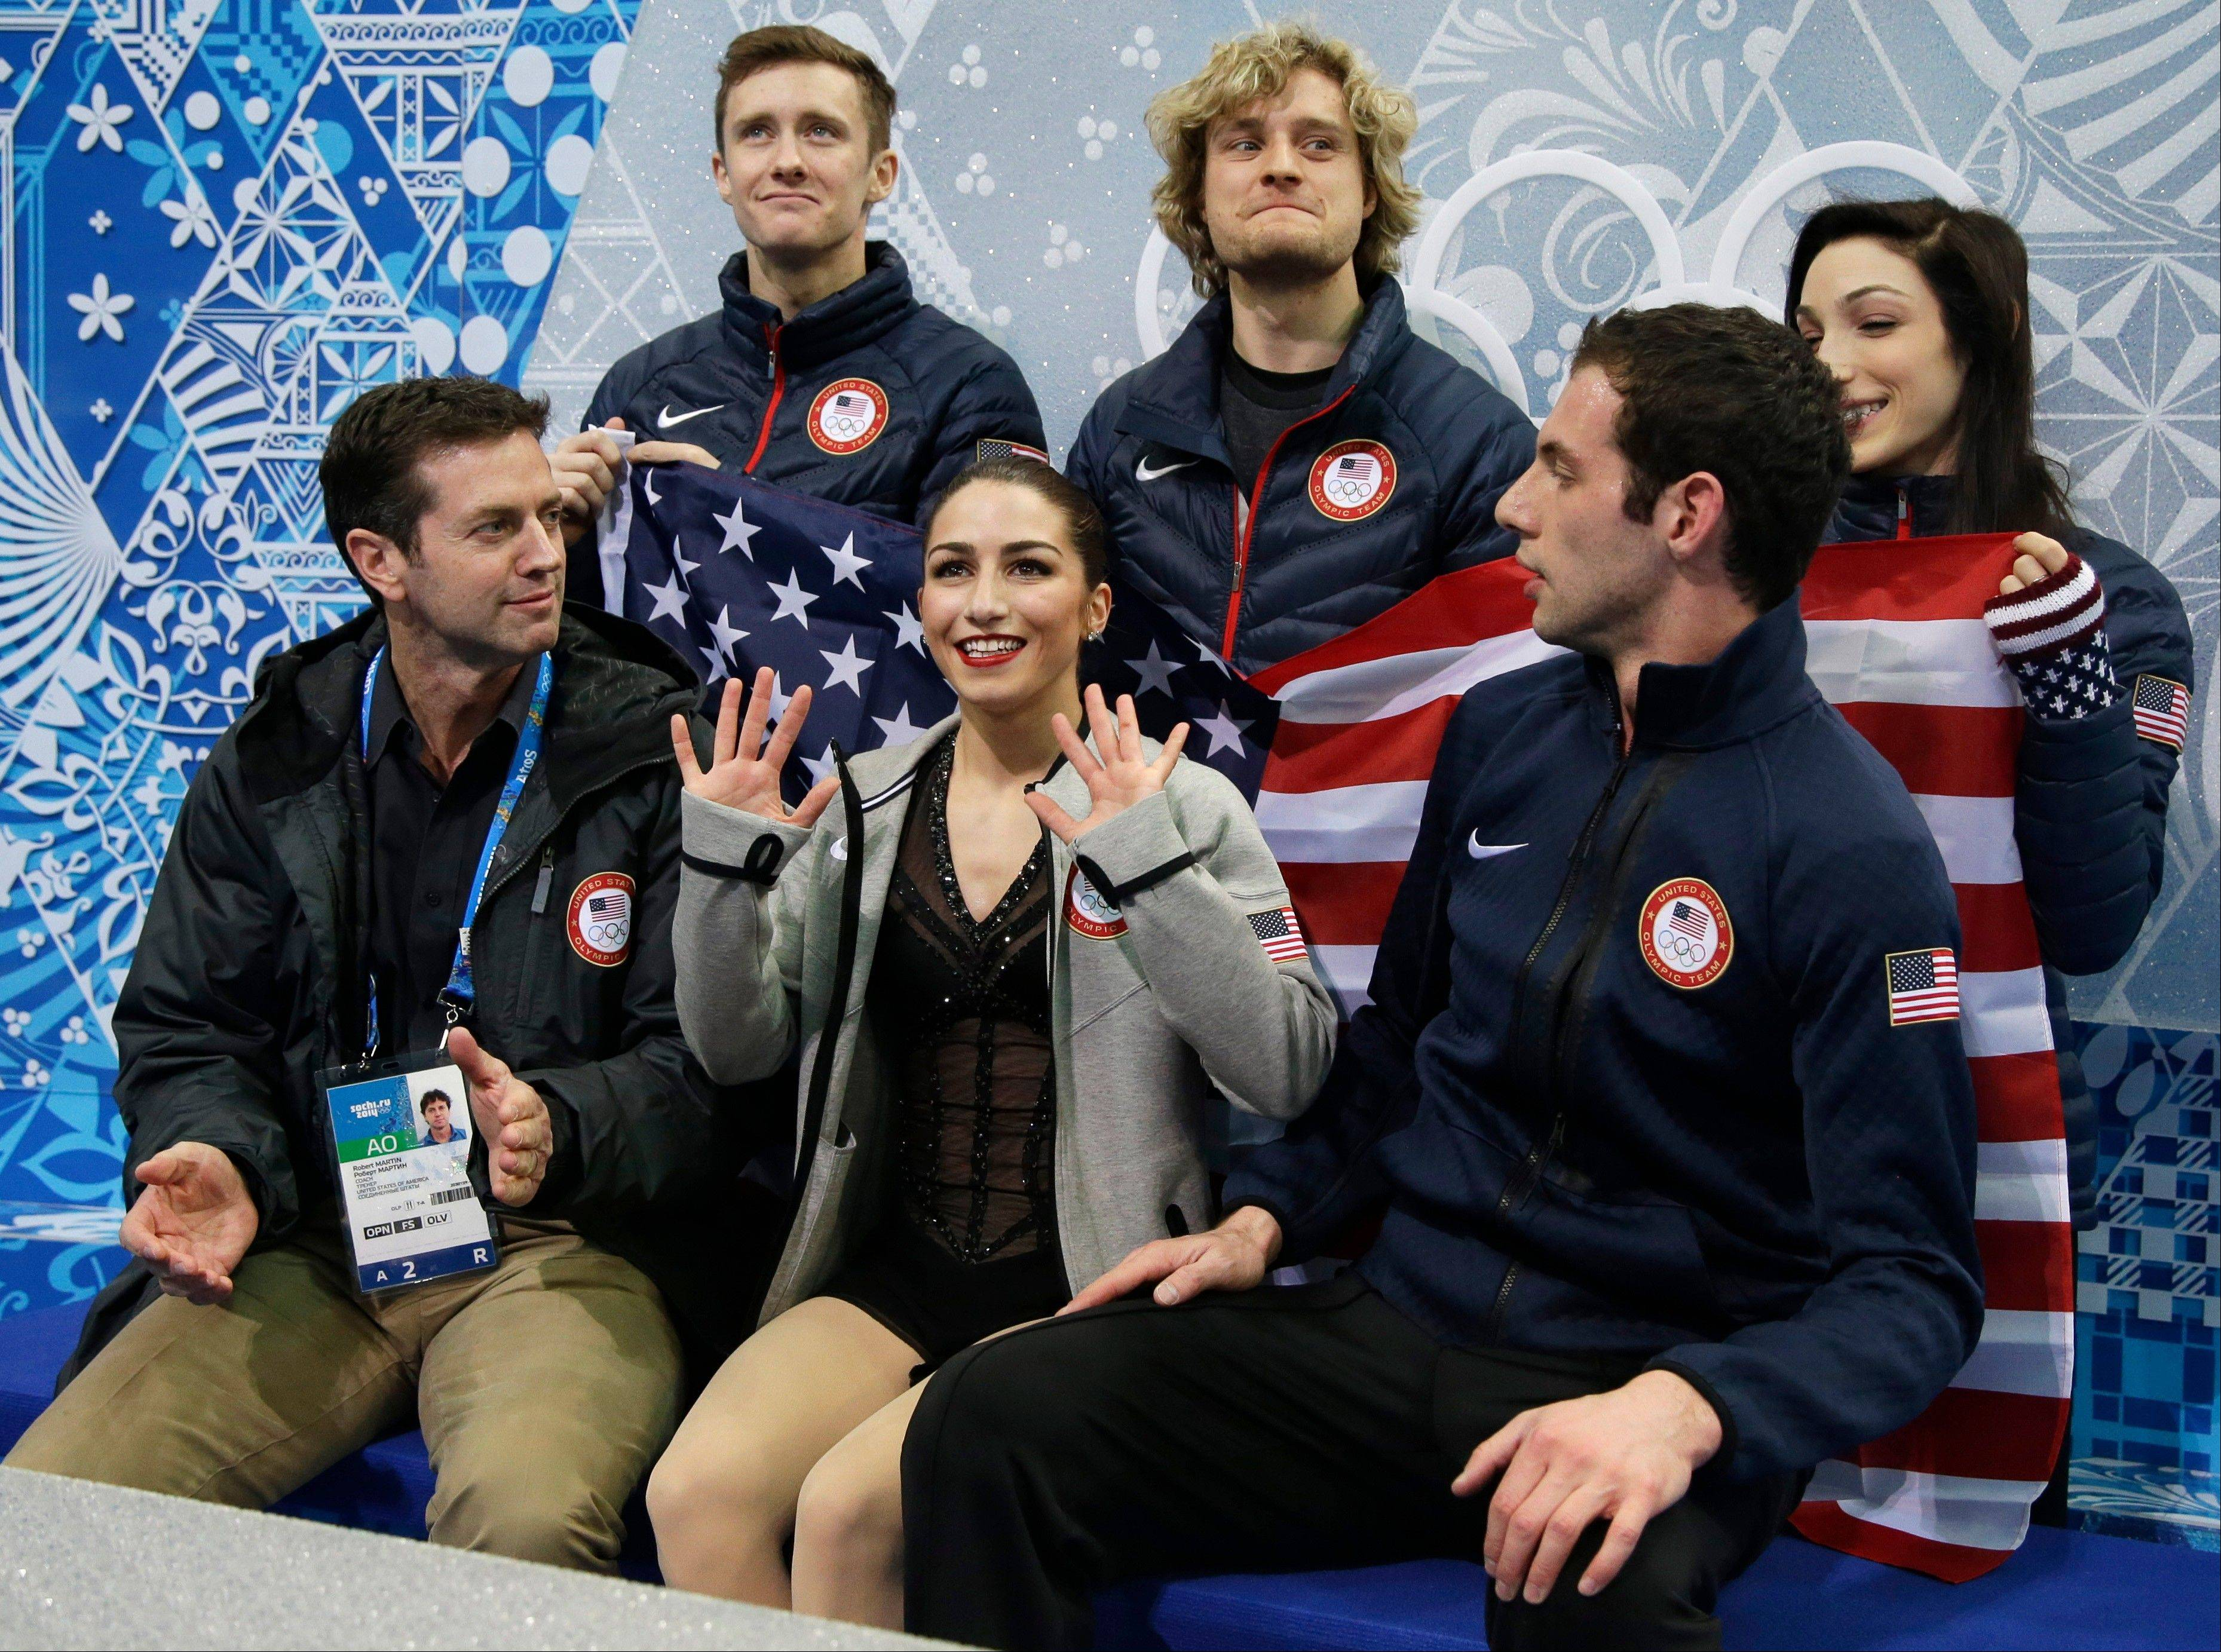 Wagner, Marlie to skate US team short programs